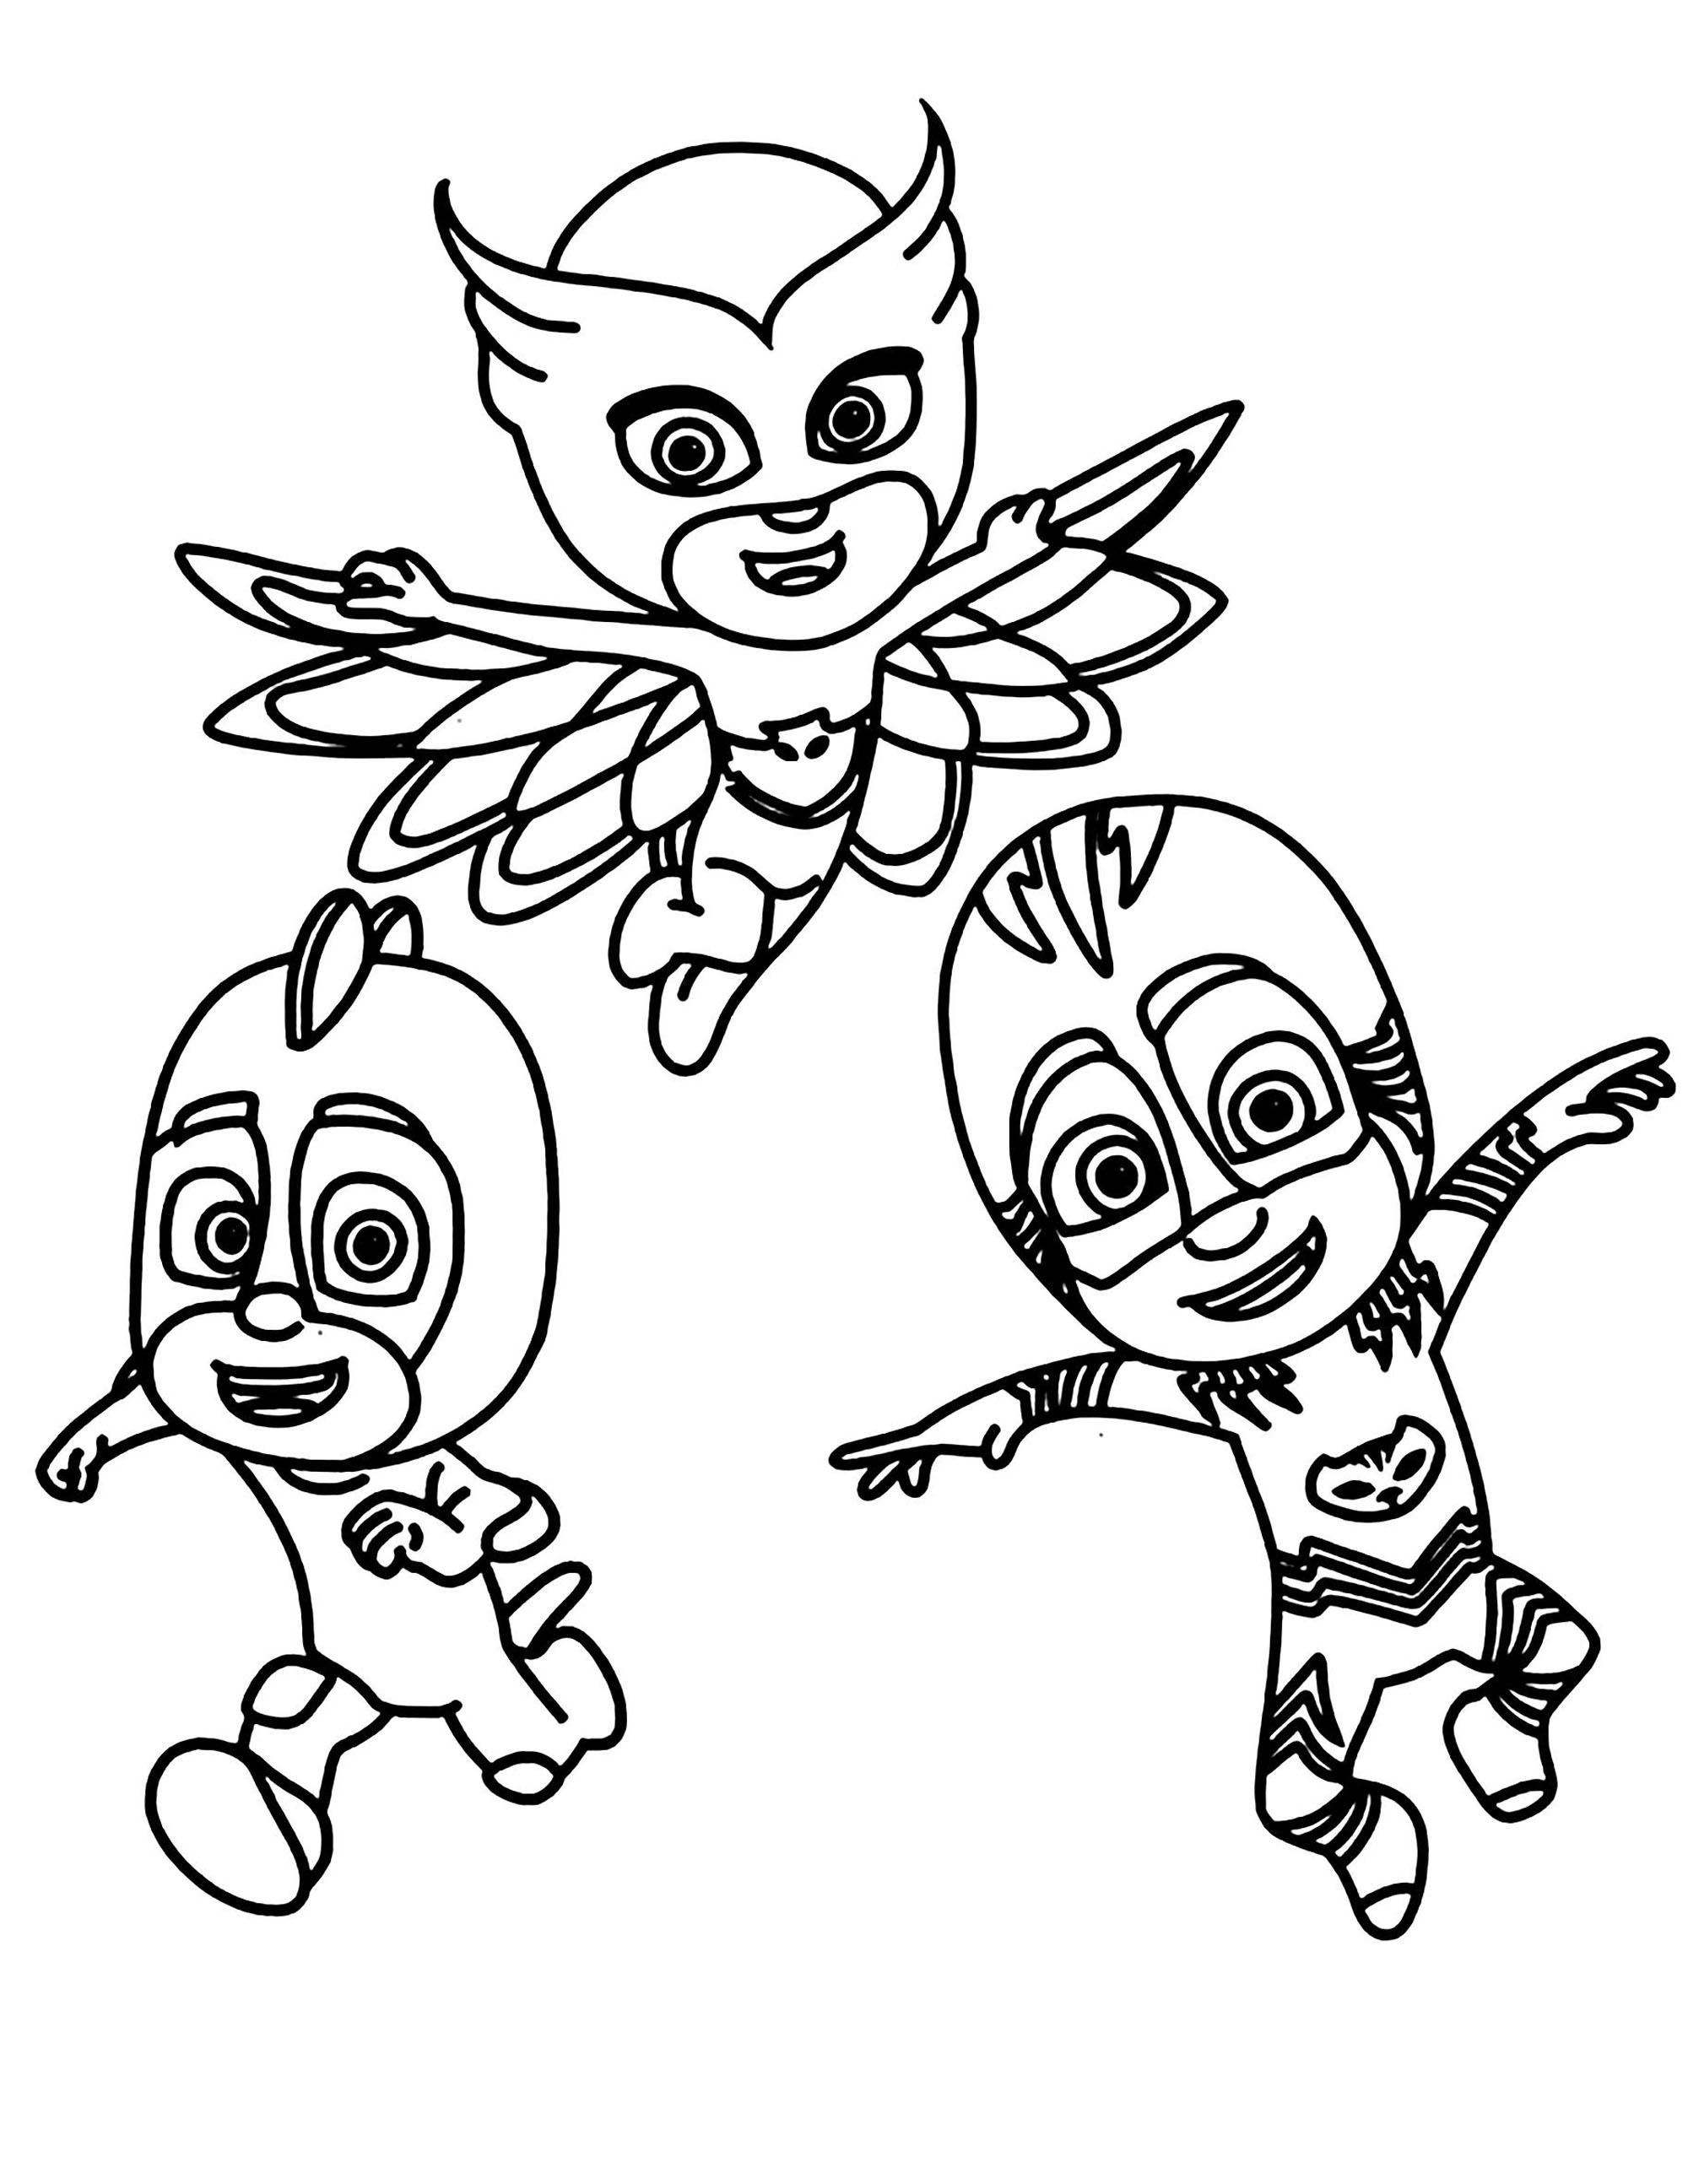 - Pj Masks To Print For Free - PJ Masks Kids Coloring Pages